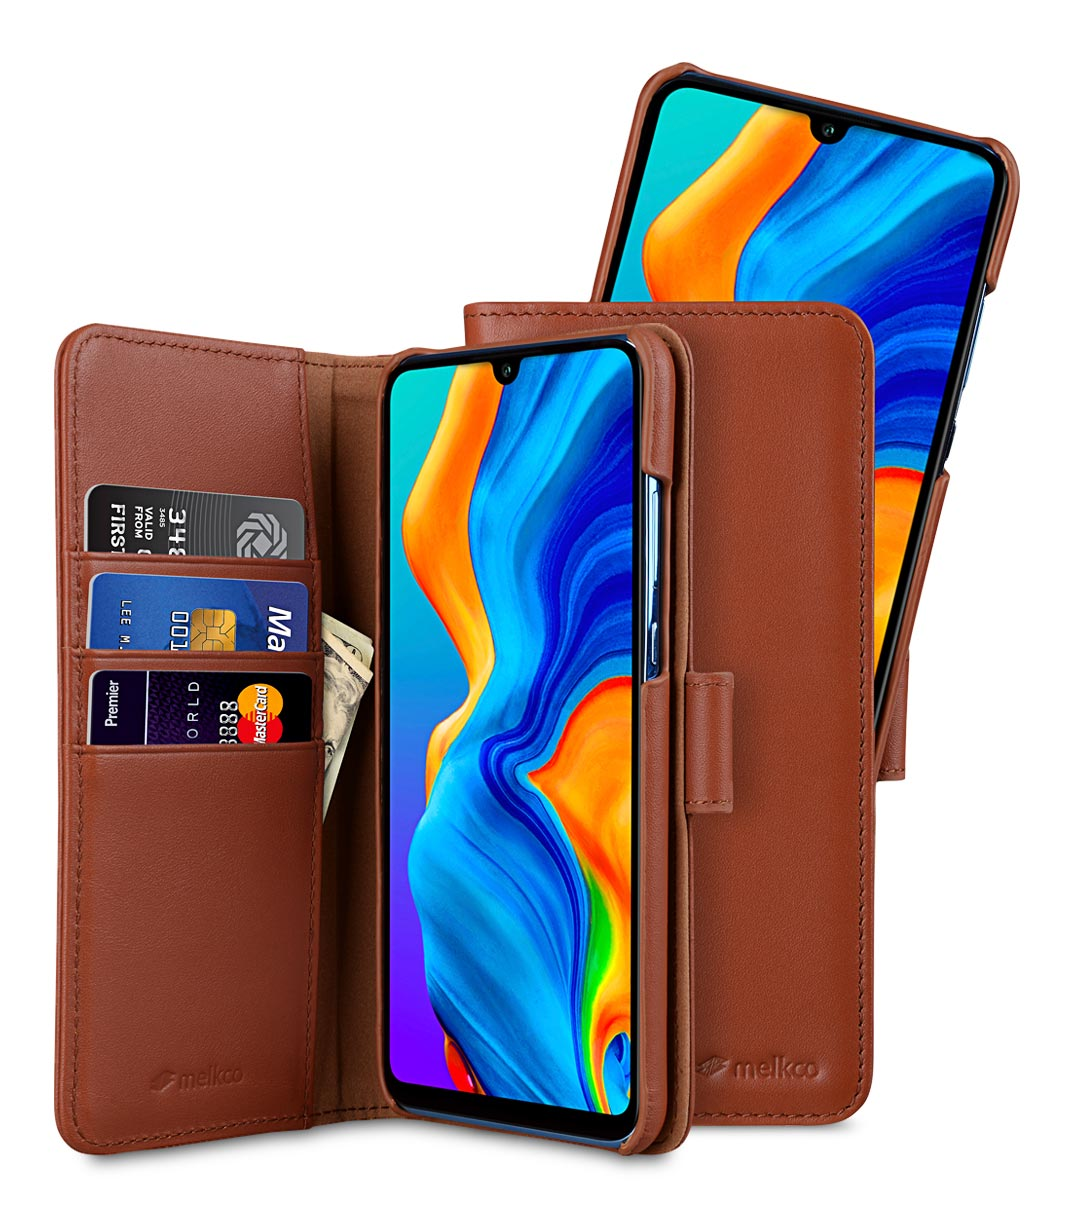 Melkco Alphard Series Premium Leather Alphard Type Case for Huawei P30 Lite - ( Orange Brown )